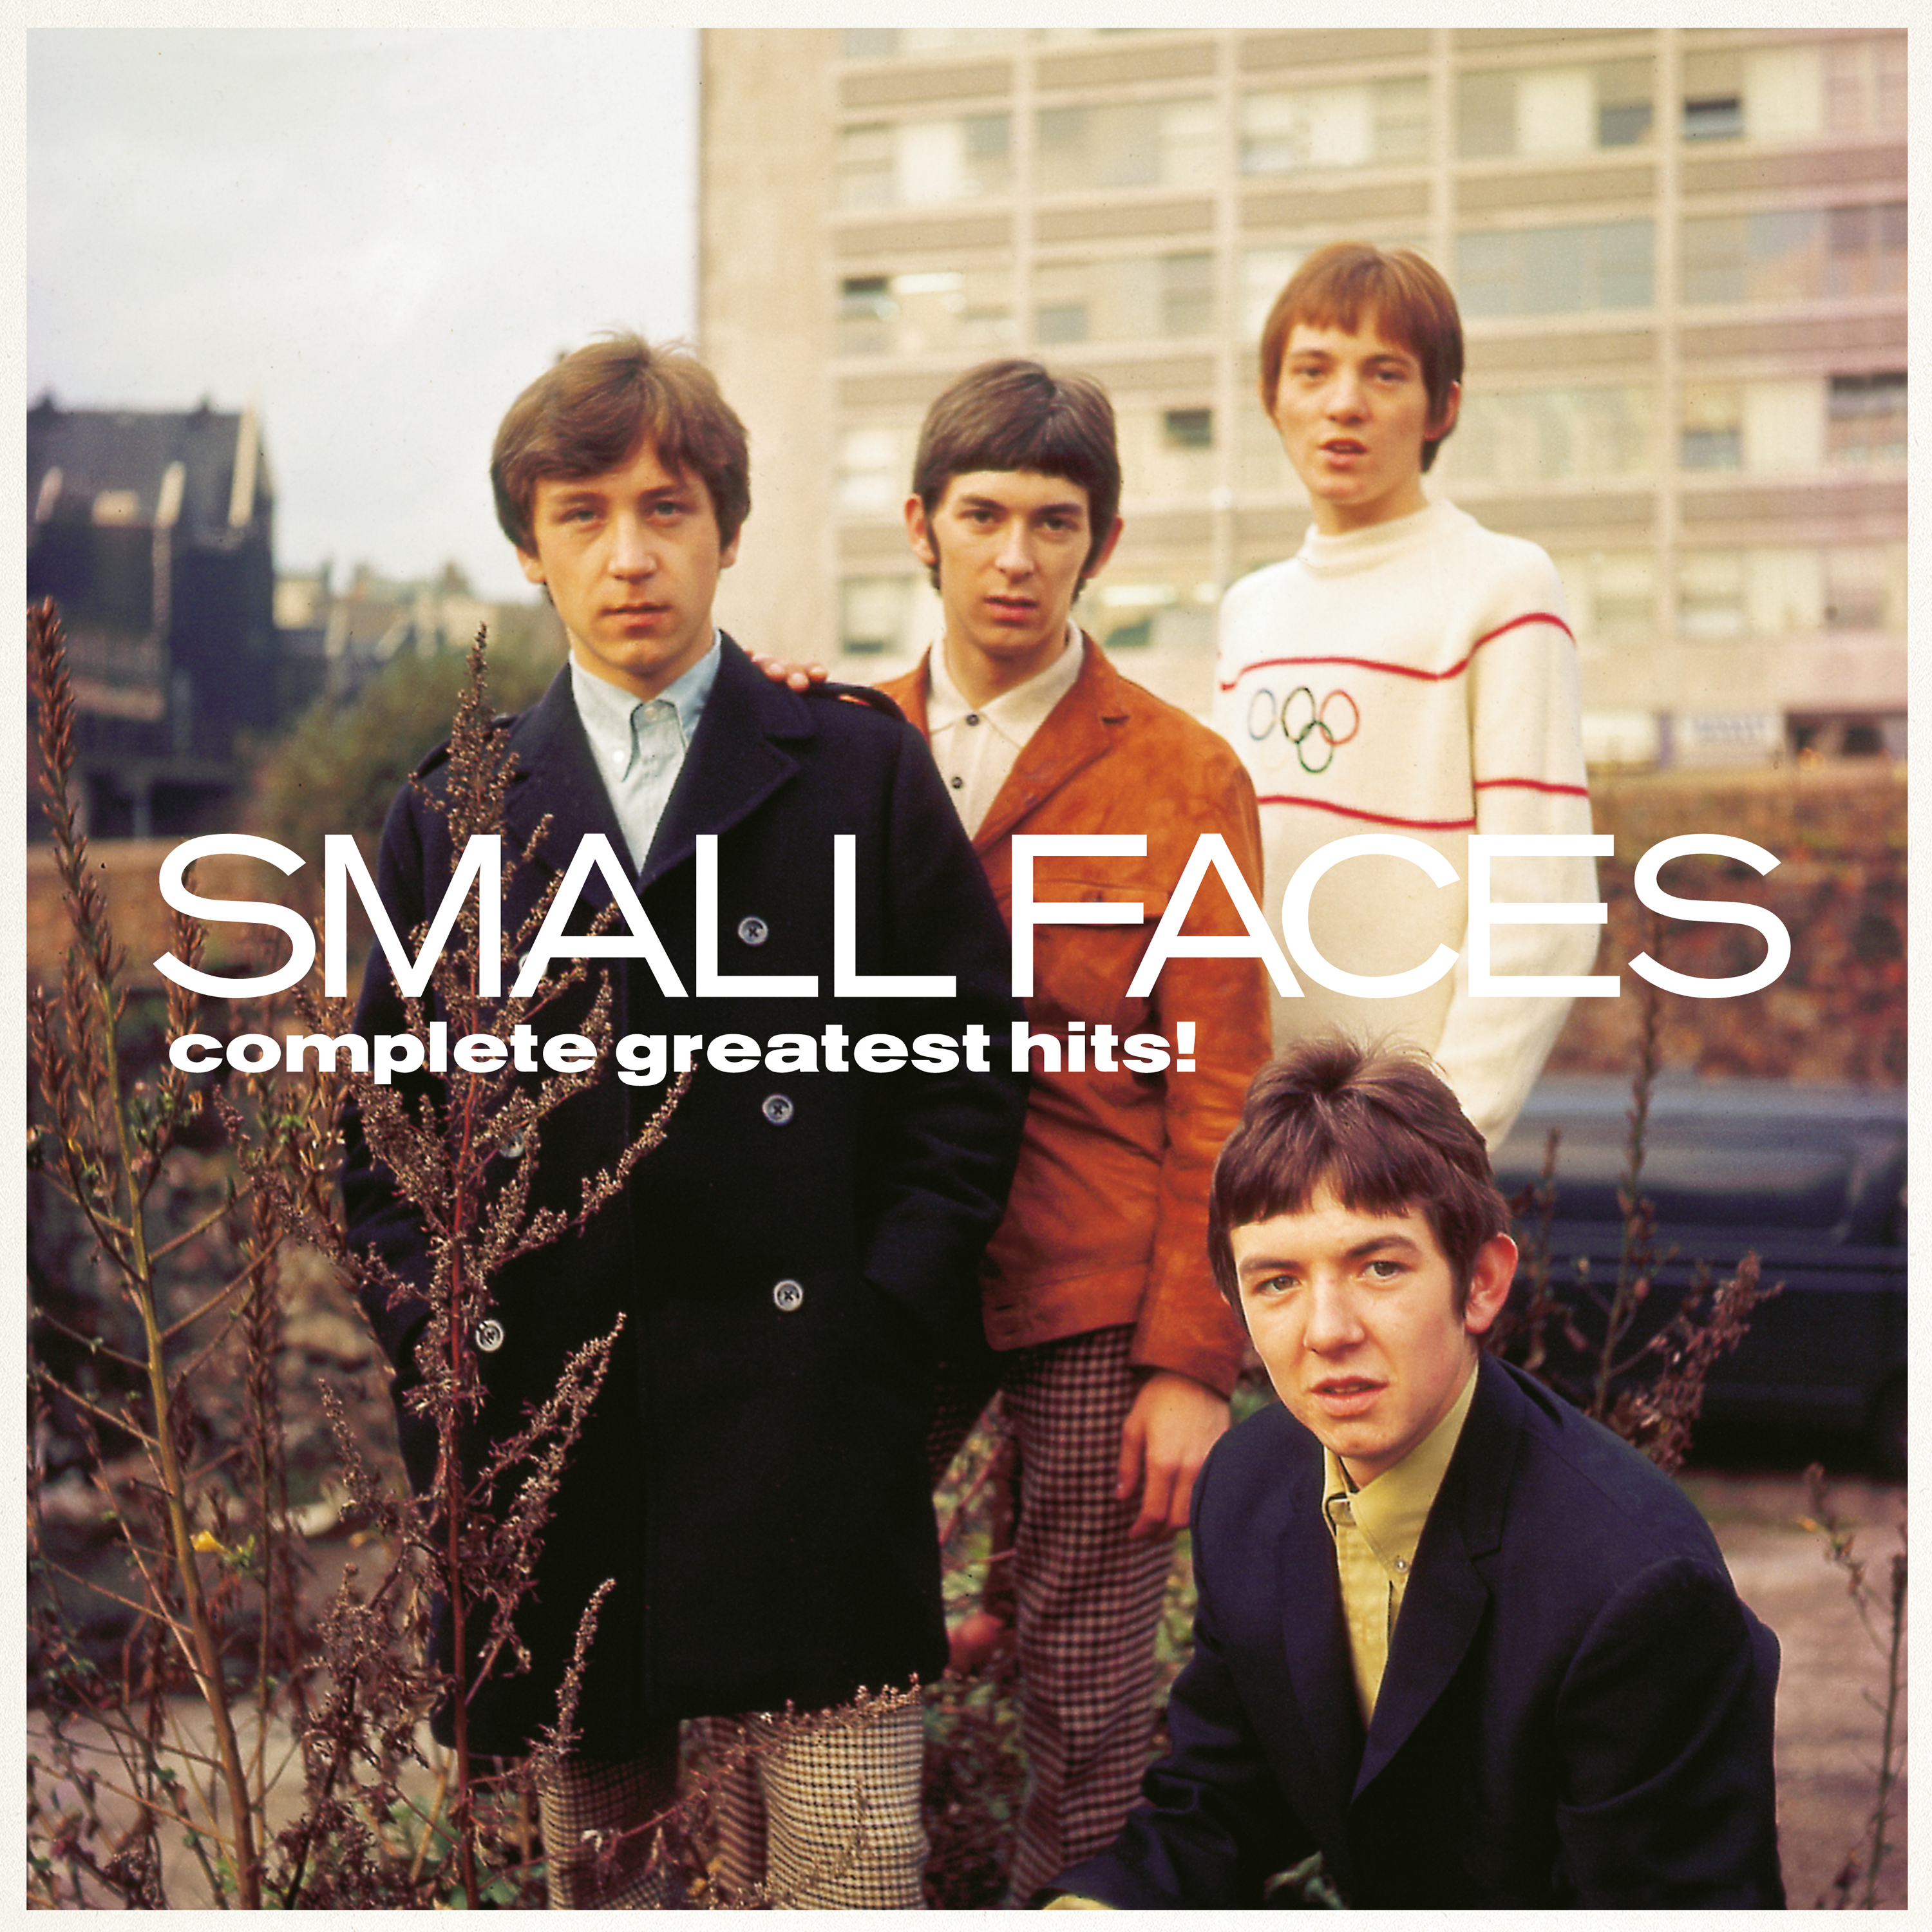 Small Faces - Complete Greatest Hits! [RSD Drops 2021]